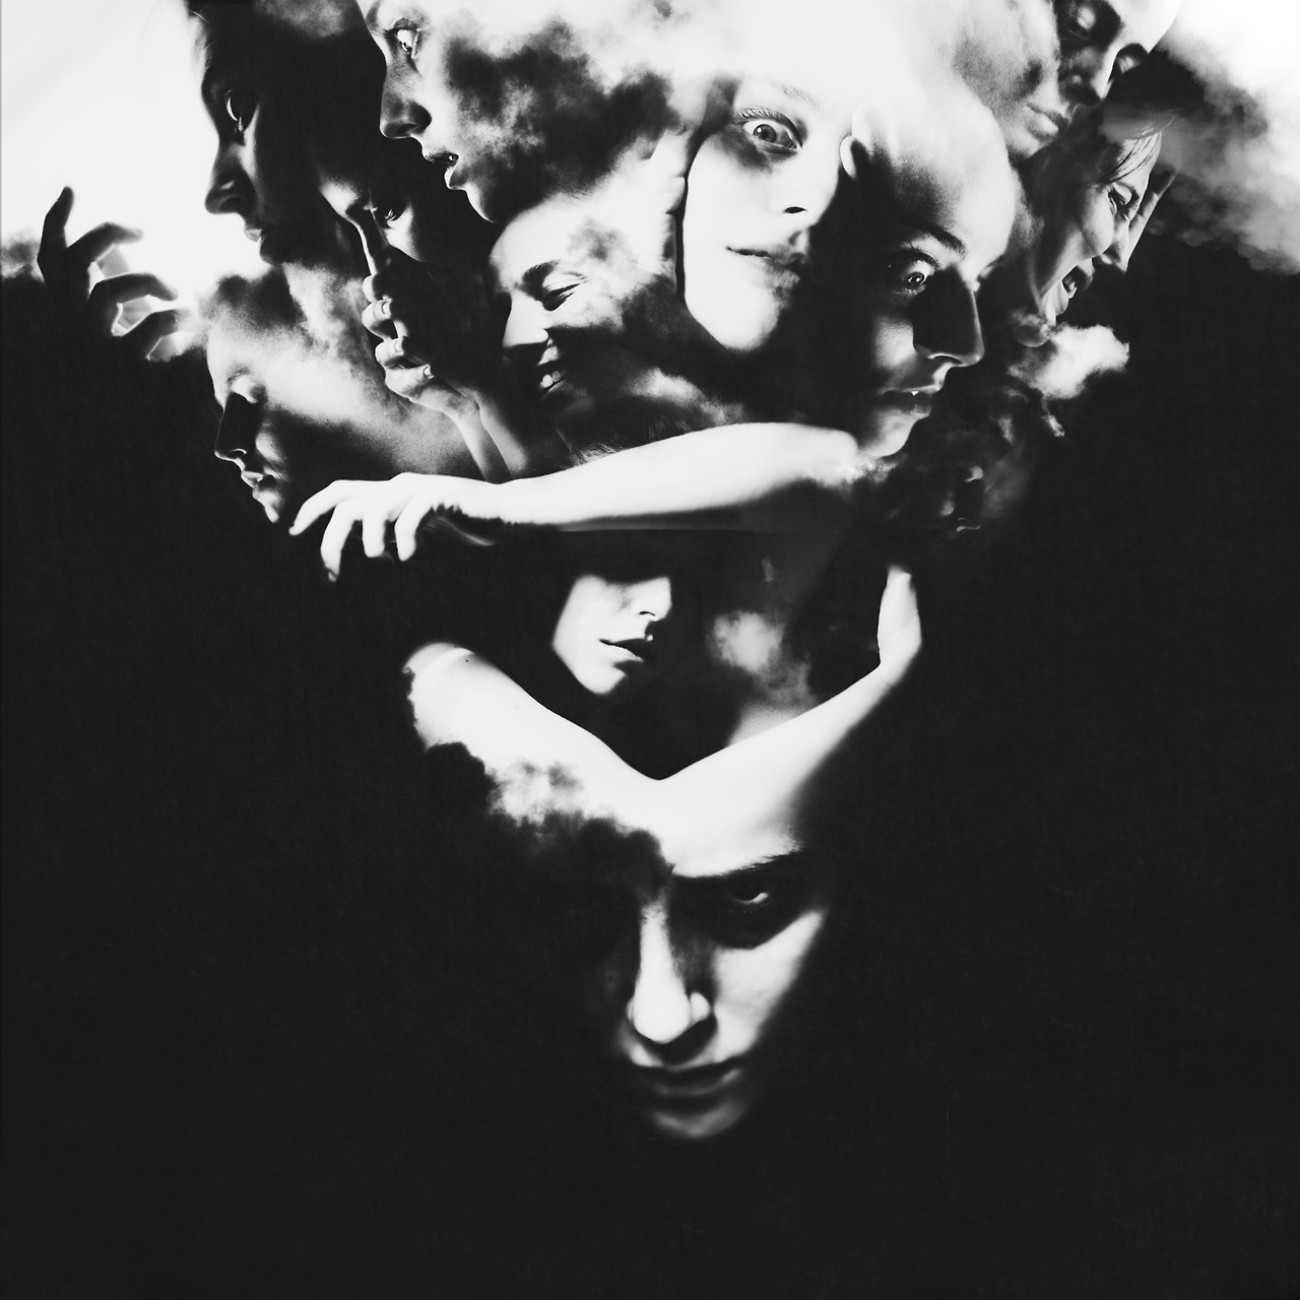 silvia grav contrast exposure black white